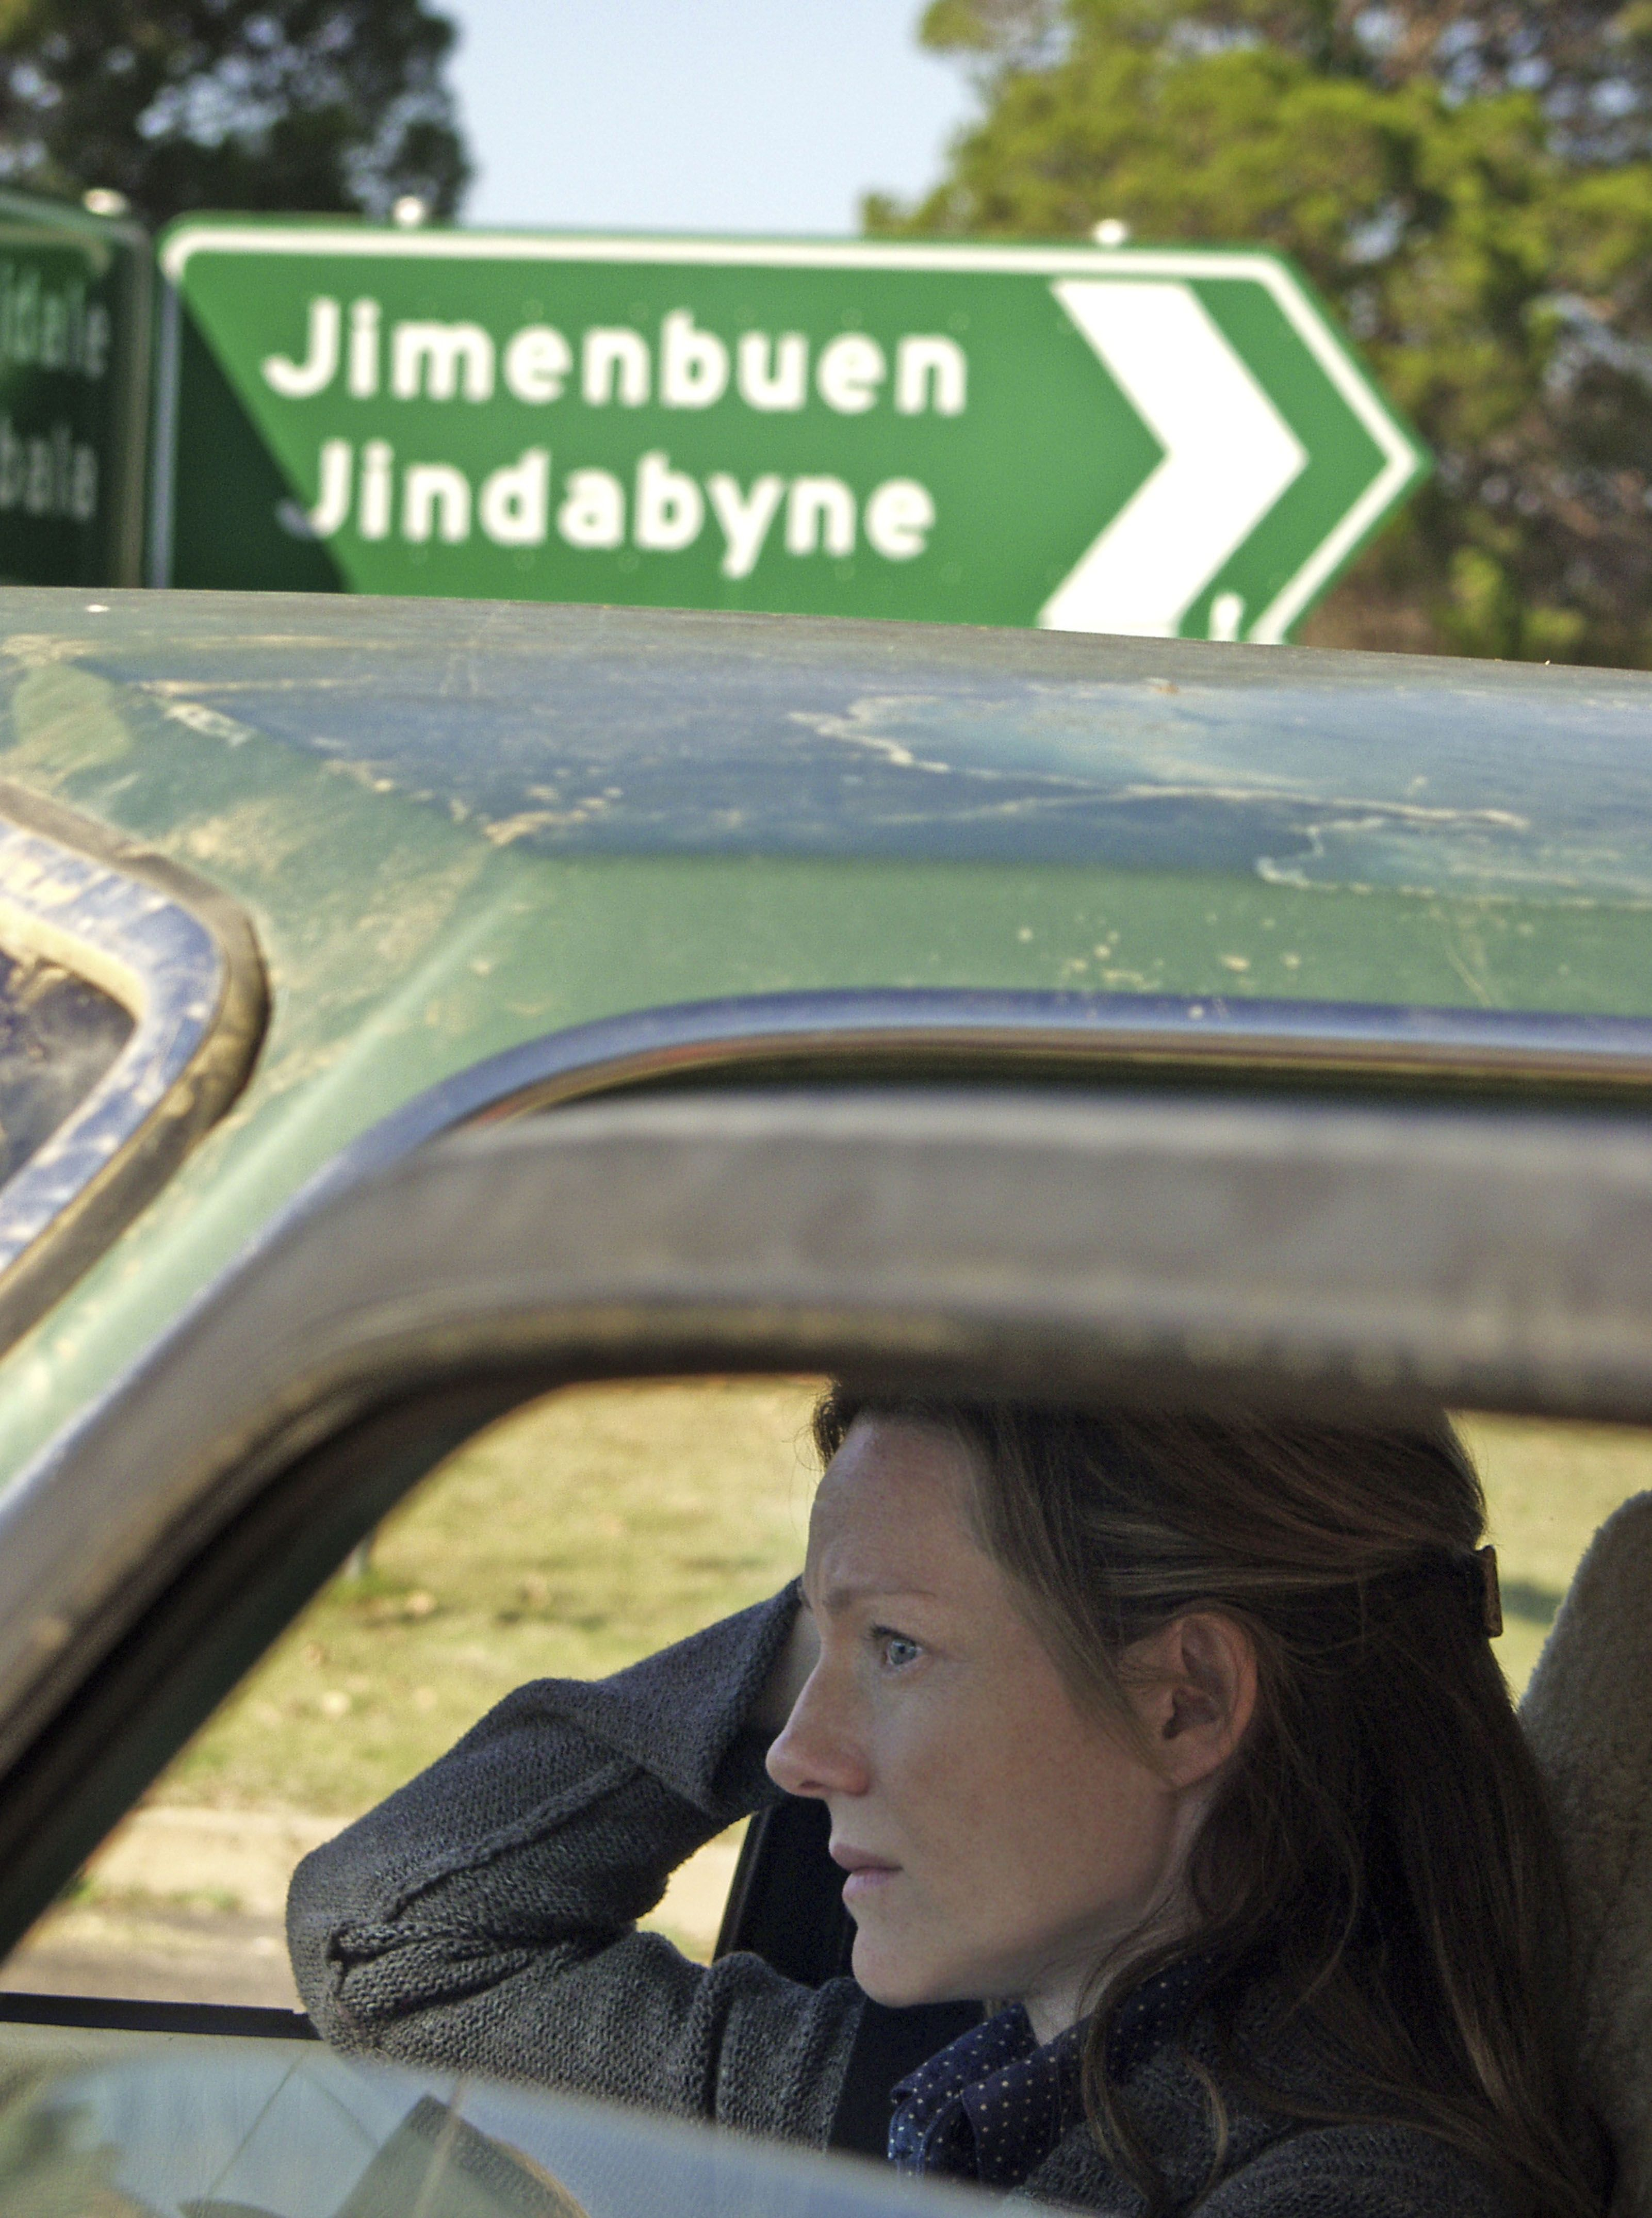 Jindabyne Movie Still 2006 Laura Linney As Claire Laura